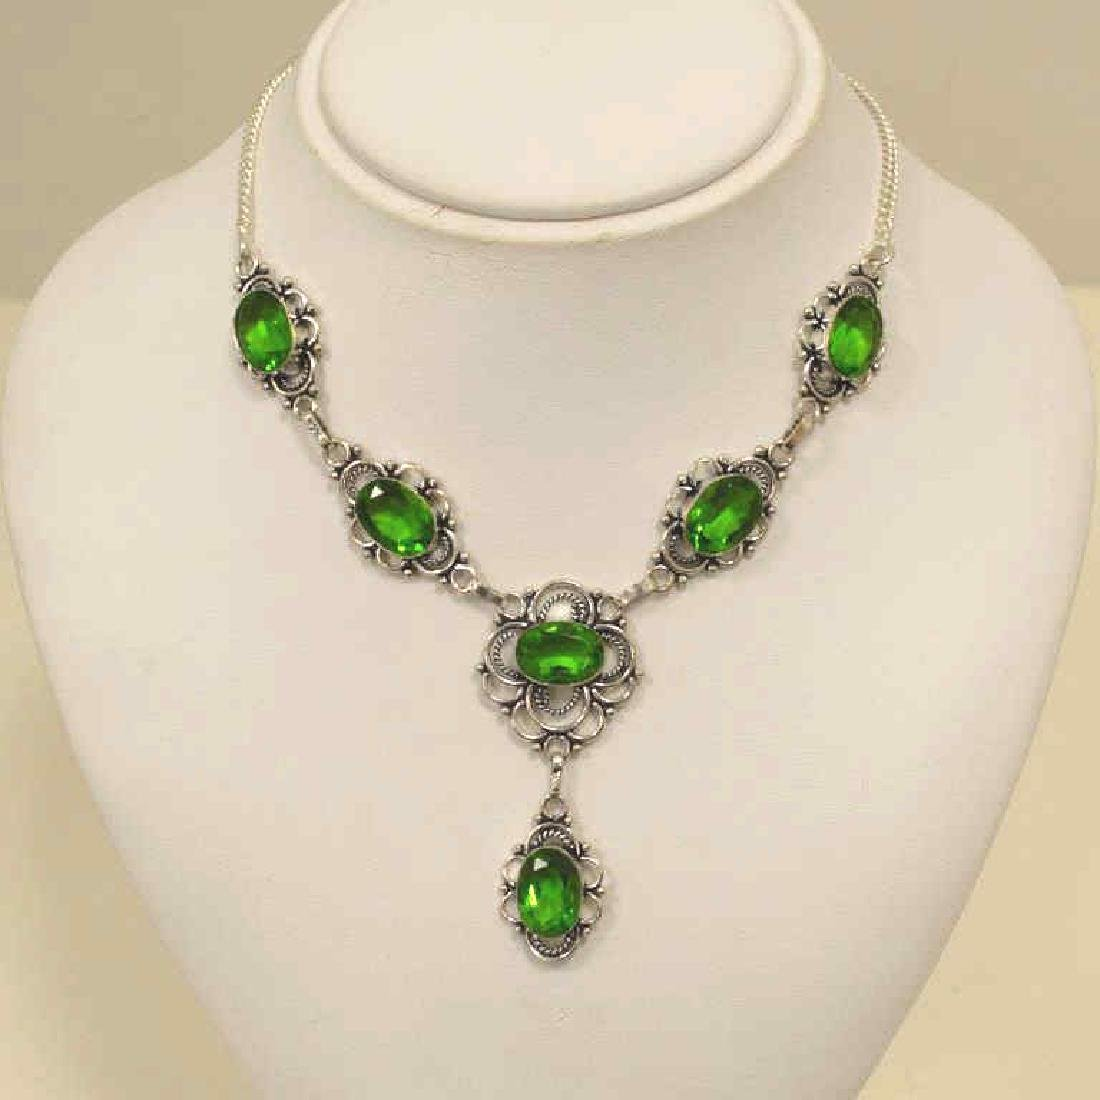 Electric green quartz necklace